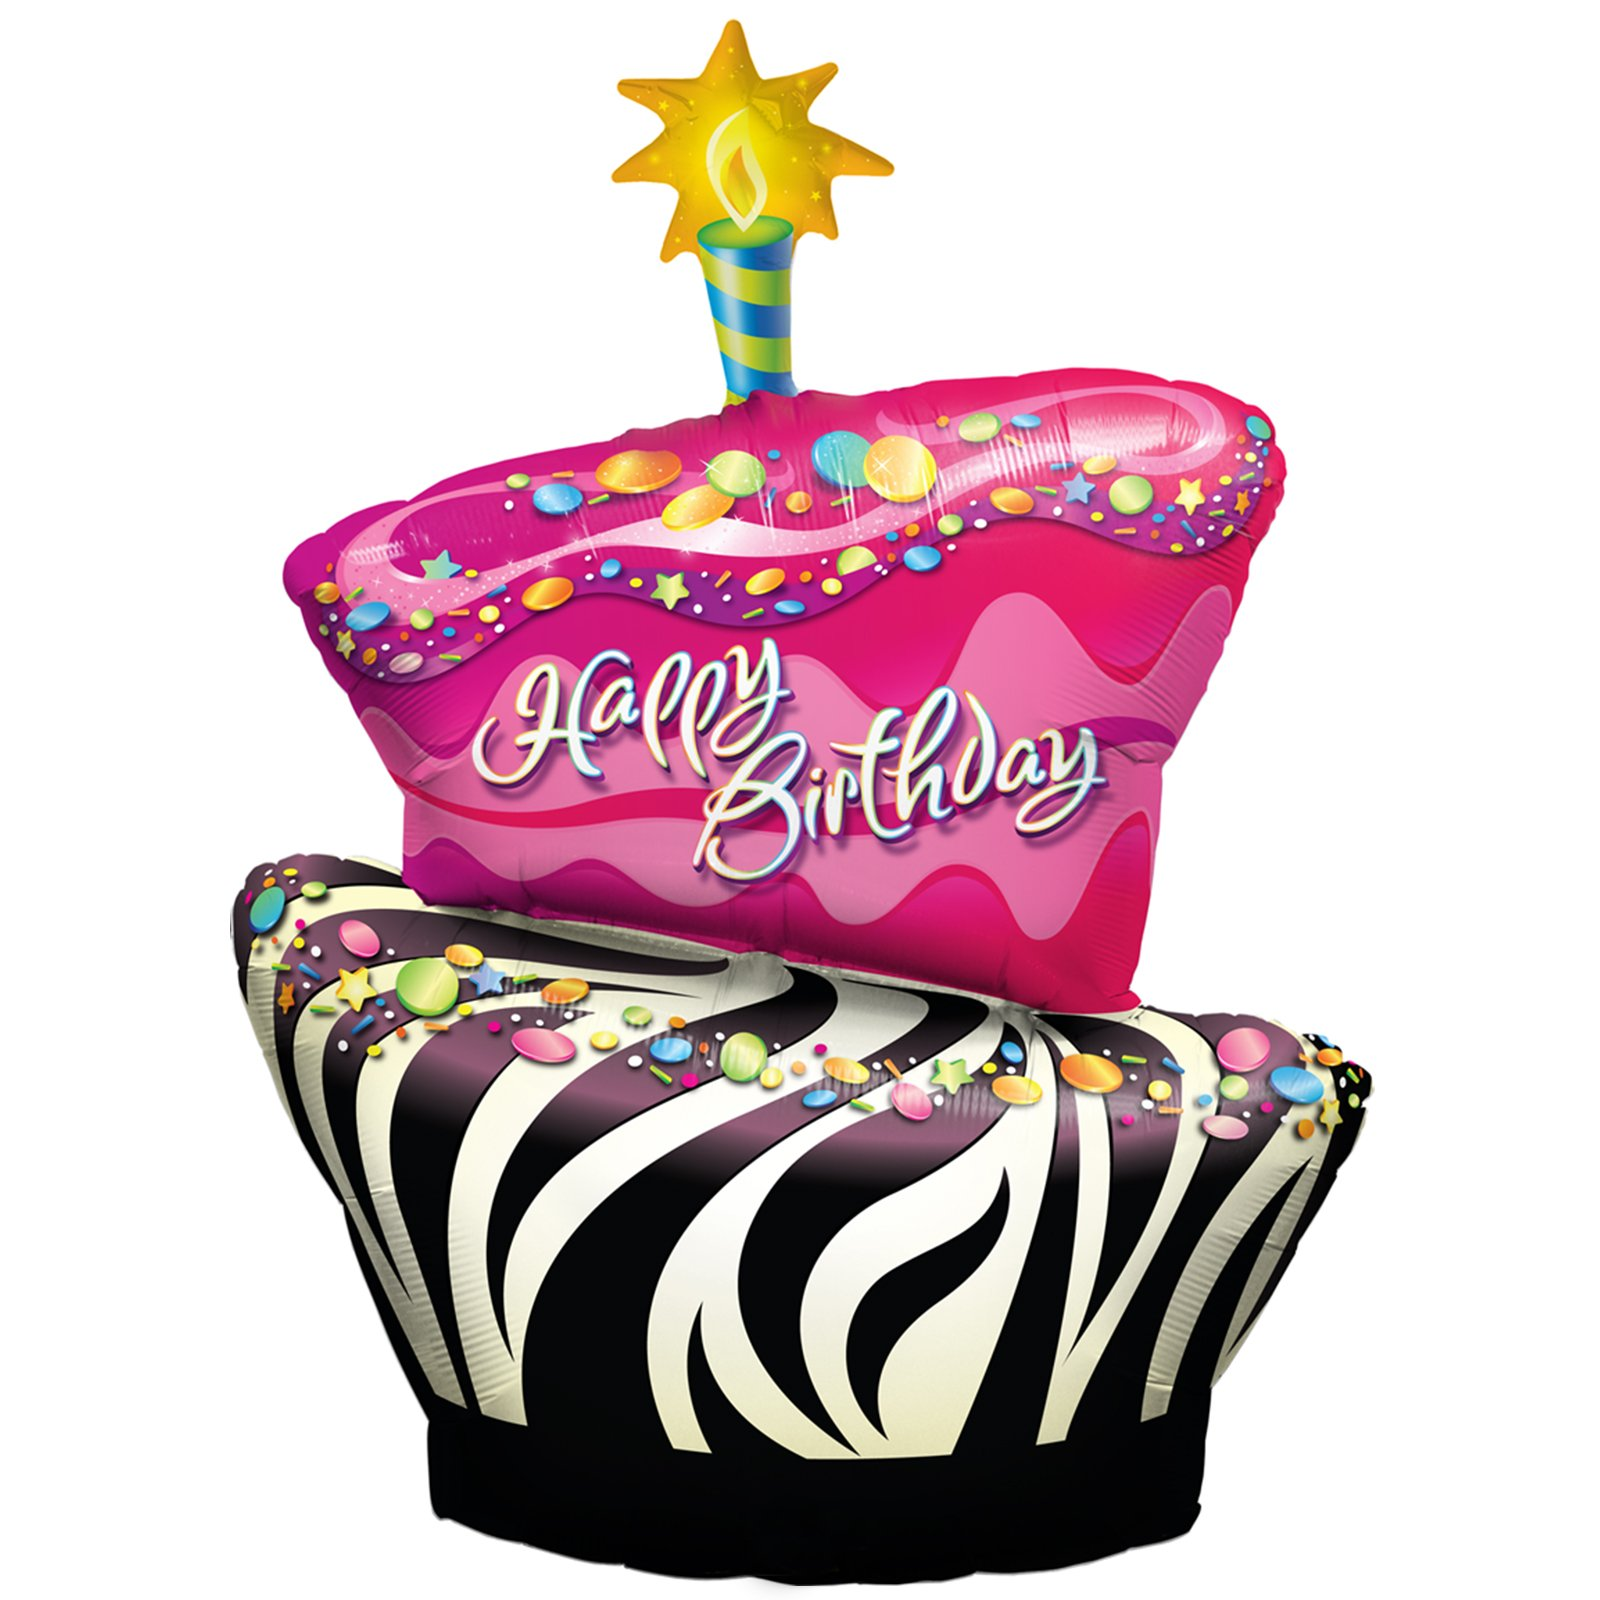 1600x1600 Amazing Cake Birthday Clipart Delicious